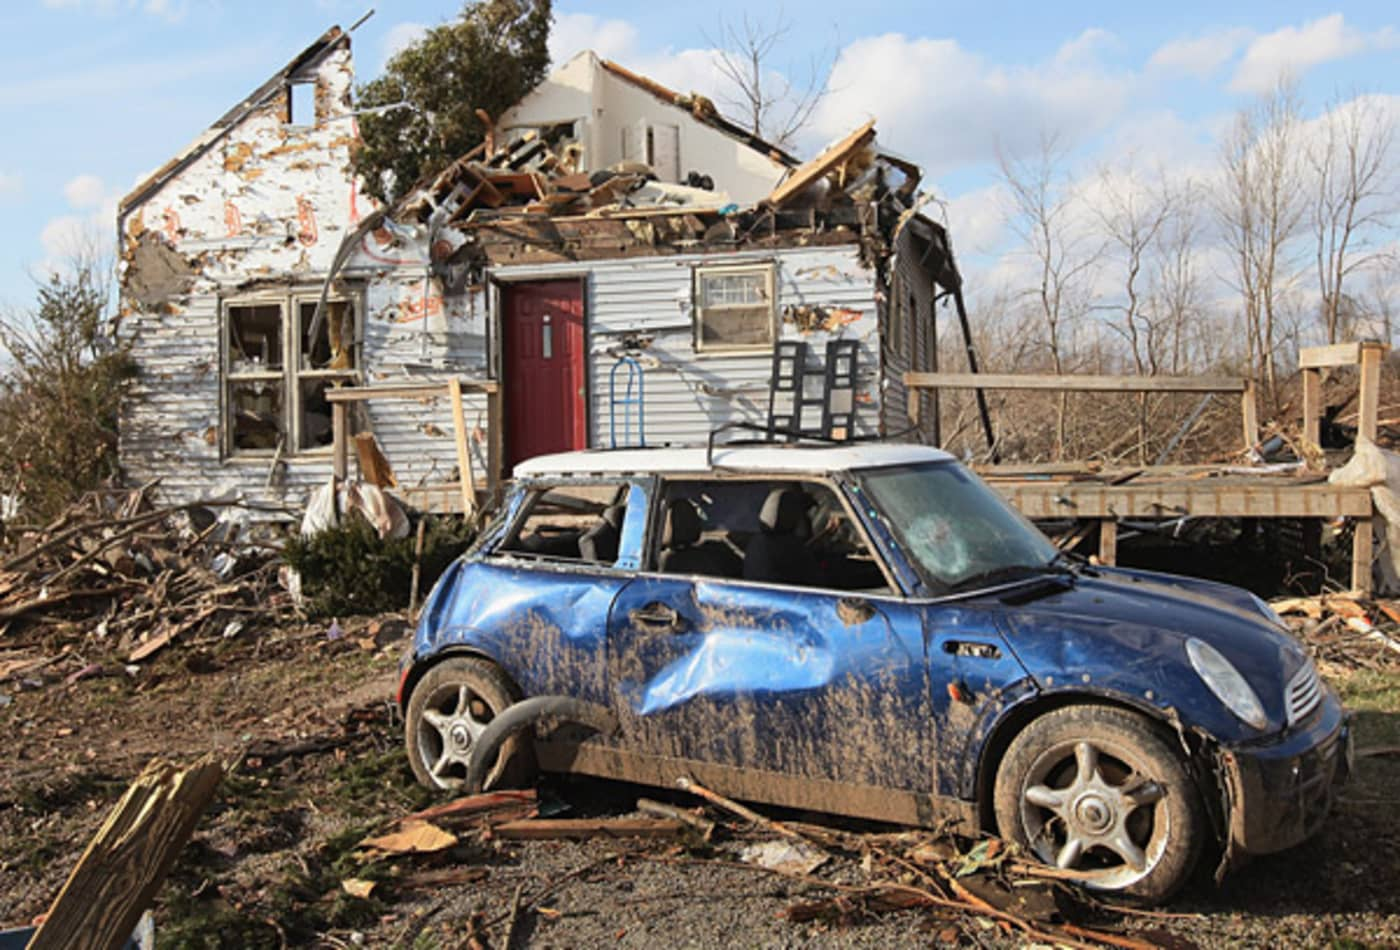 scenes-from-the-midwest-tornadoes-minicooper.jpg